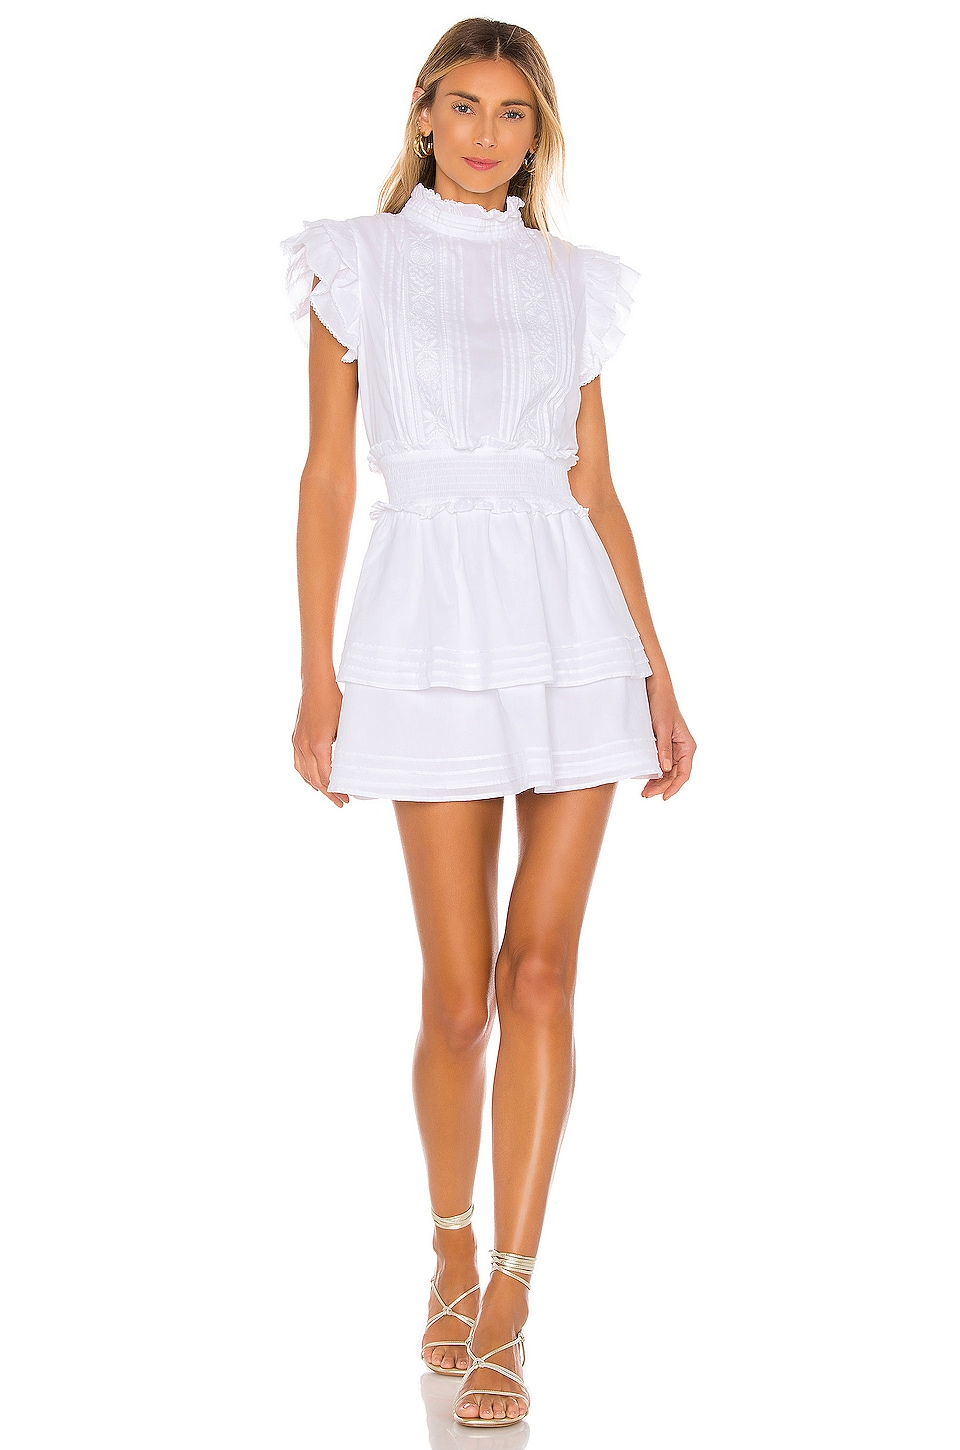 Versailles Mini Dress             Cleobella                                                                                                       CA$ 224.65 8